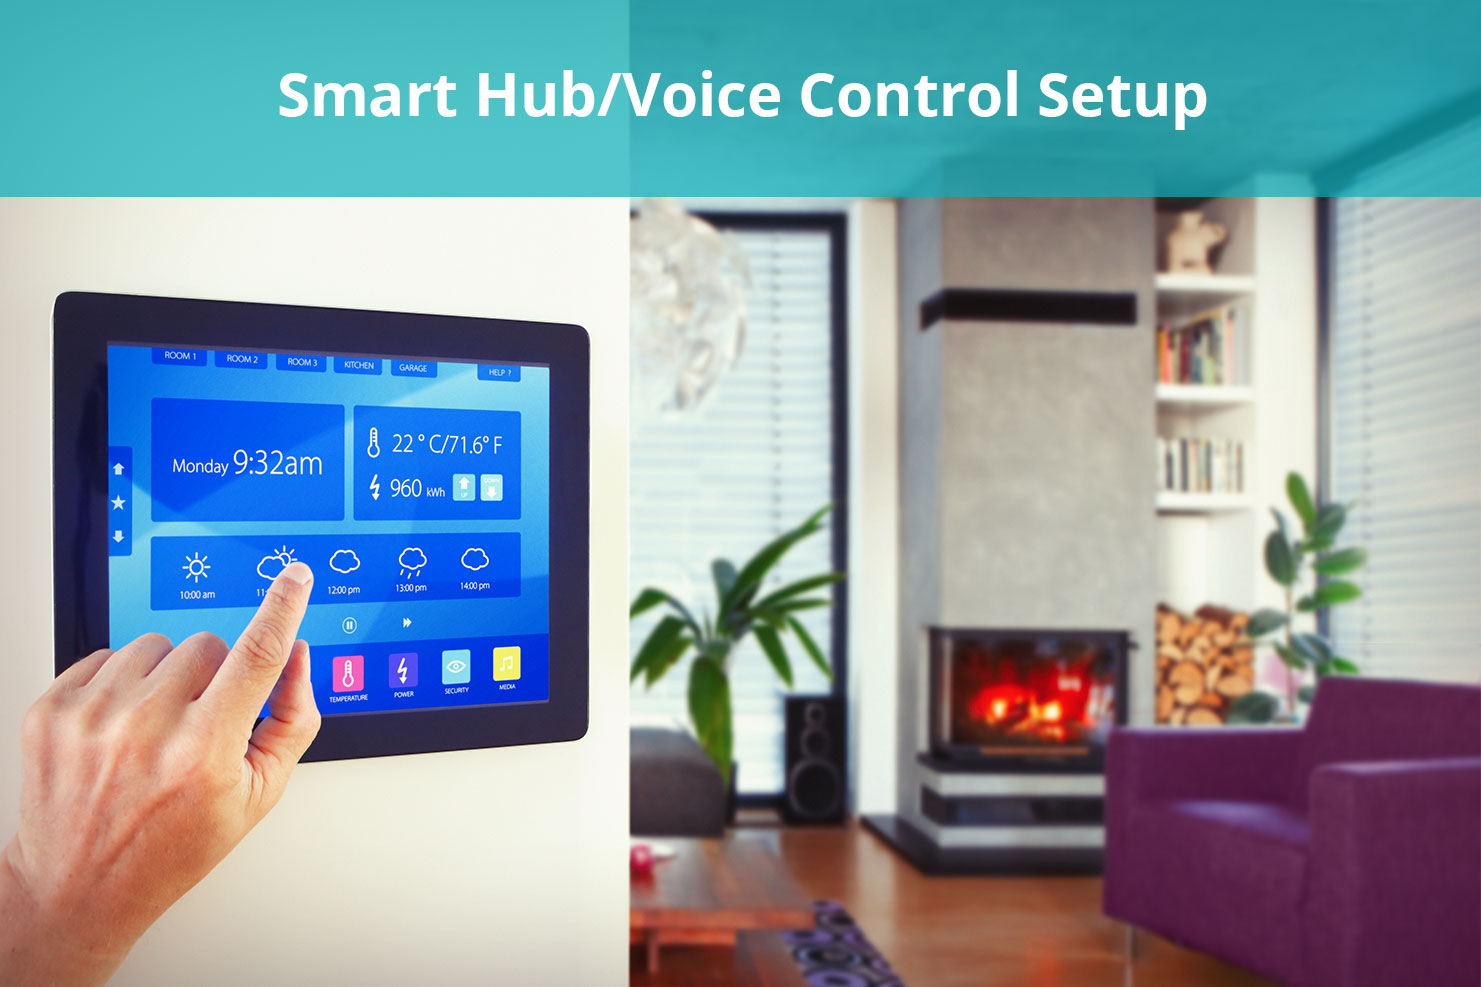 Office Depot Smart Hub/Voice Control Setup